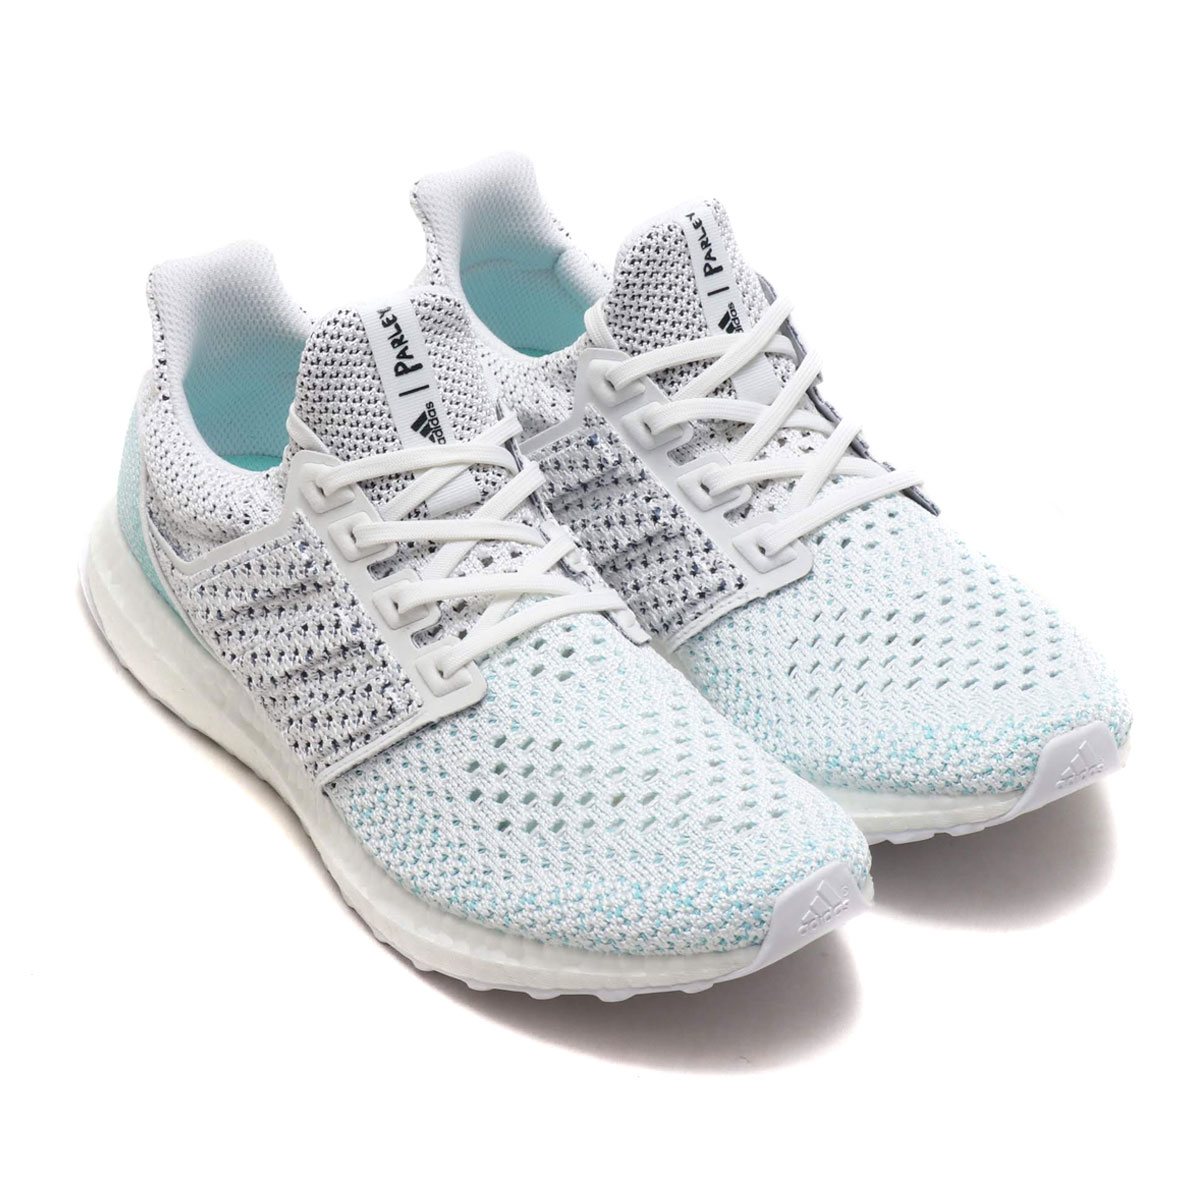 adidas UltraBOOST Parley LTD(アディダス ウルトラブーストパーレーLTD)RUNNING WHITE/RUNNING WHITE/BLUE SPIRIT【メンズ スニーカー】18FA-I